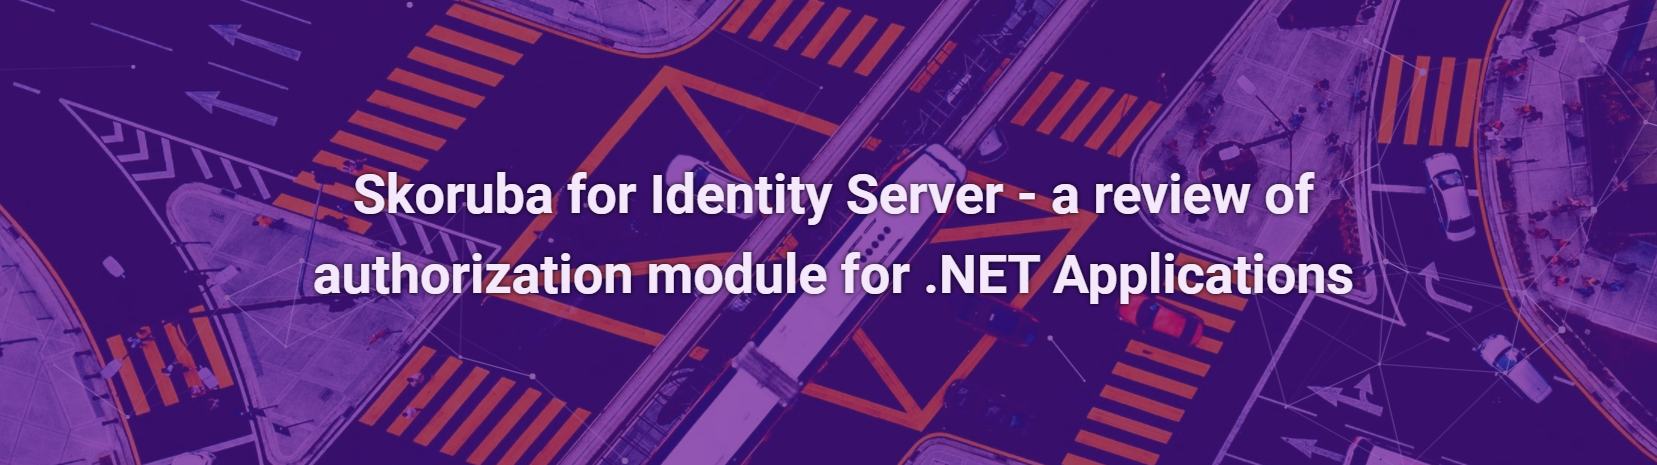 Skoruba for Identity Server – a review of authorization module for .NET Applications